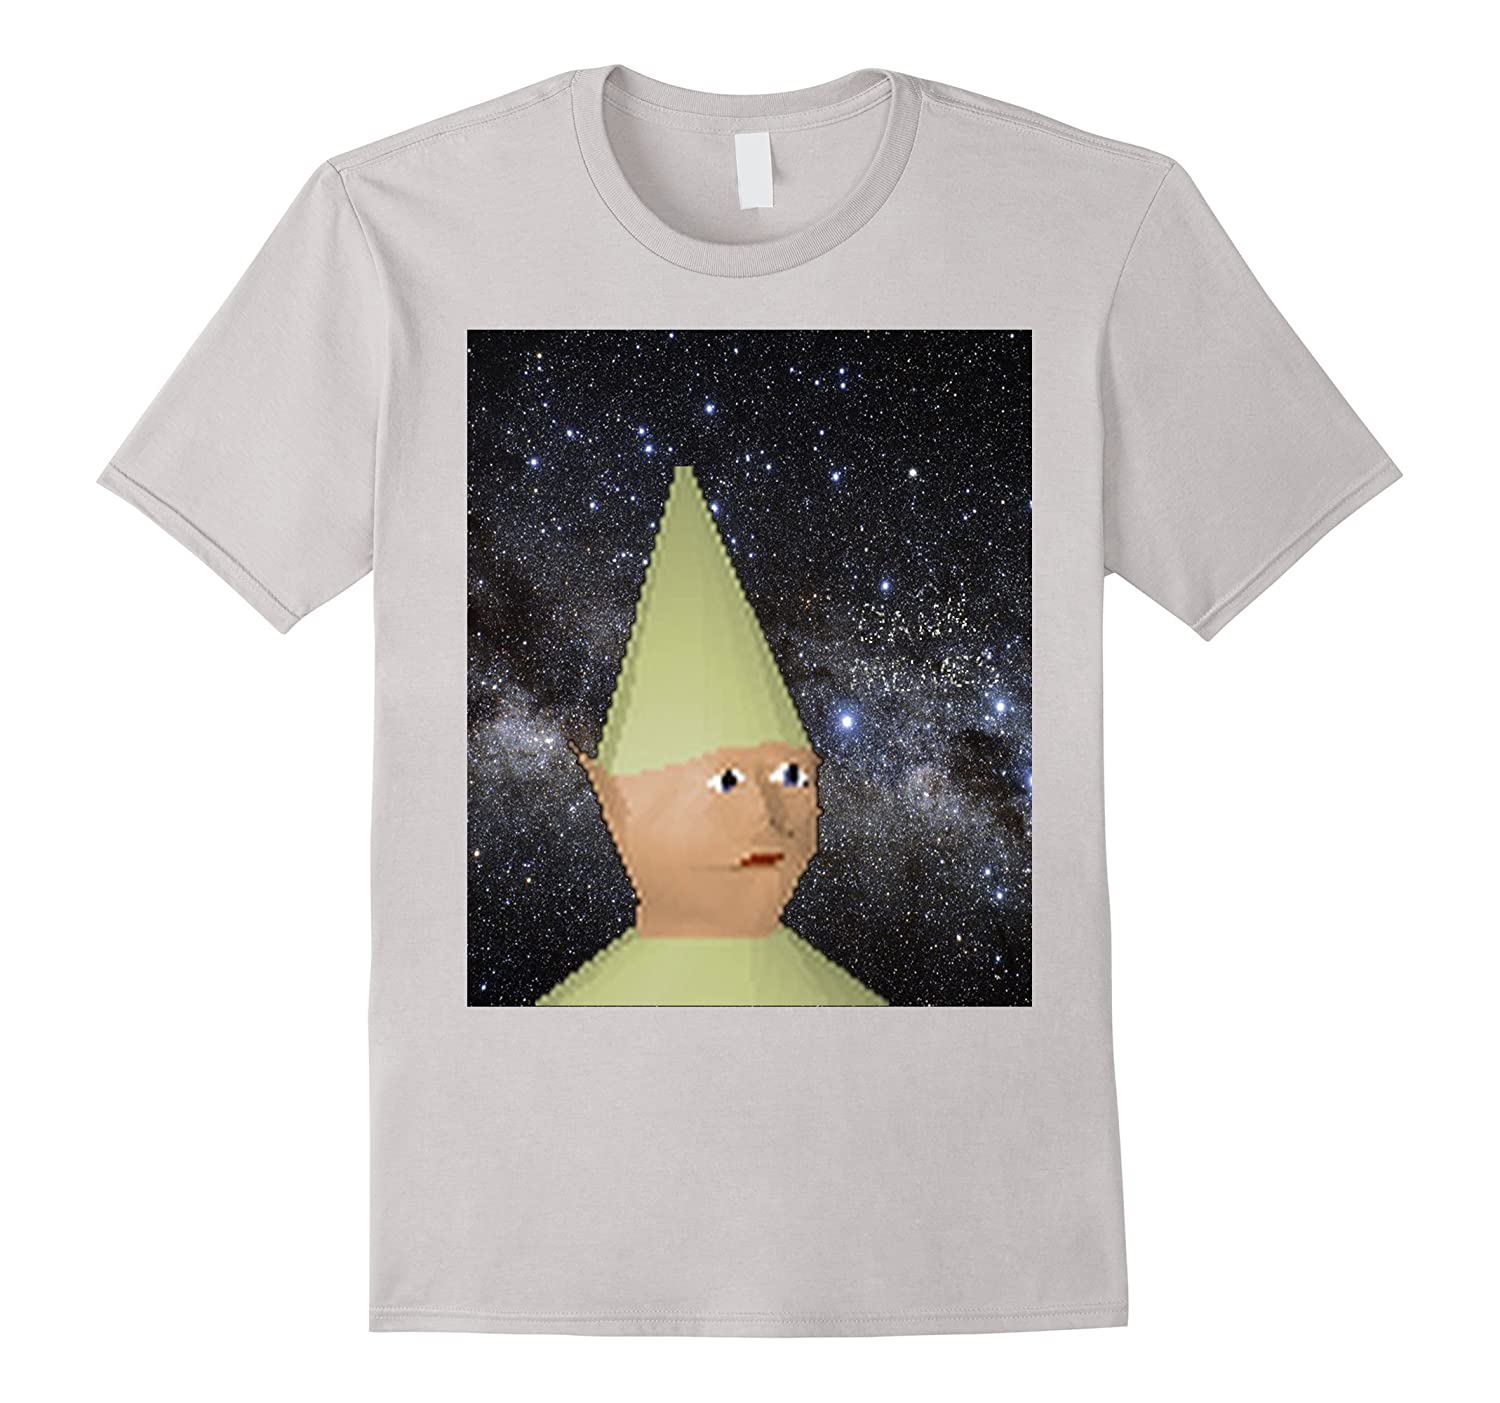 Gnome Child Dank Memes Meme T Shirt Th Teehelen